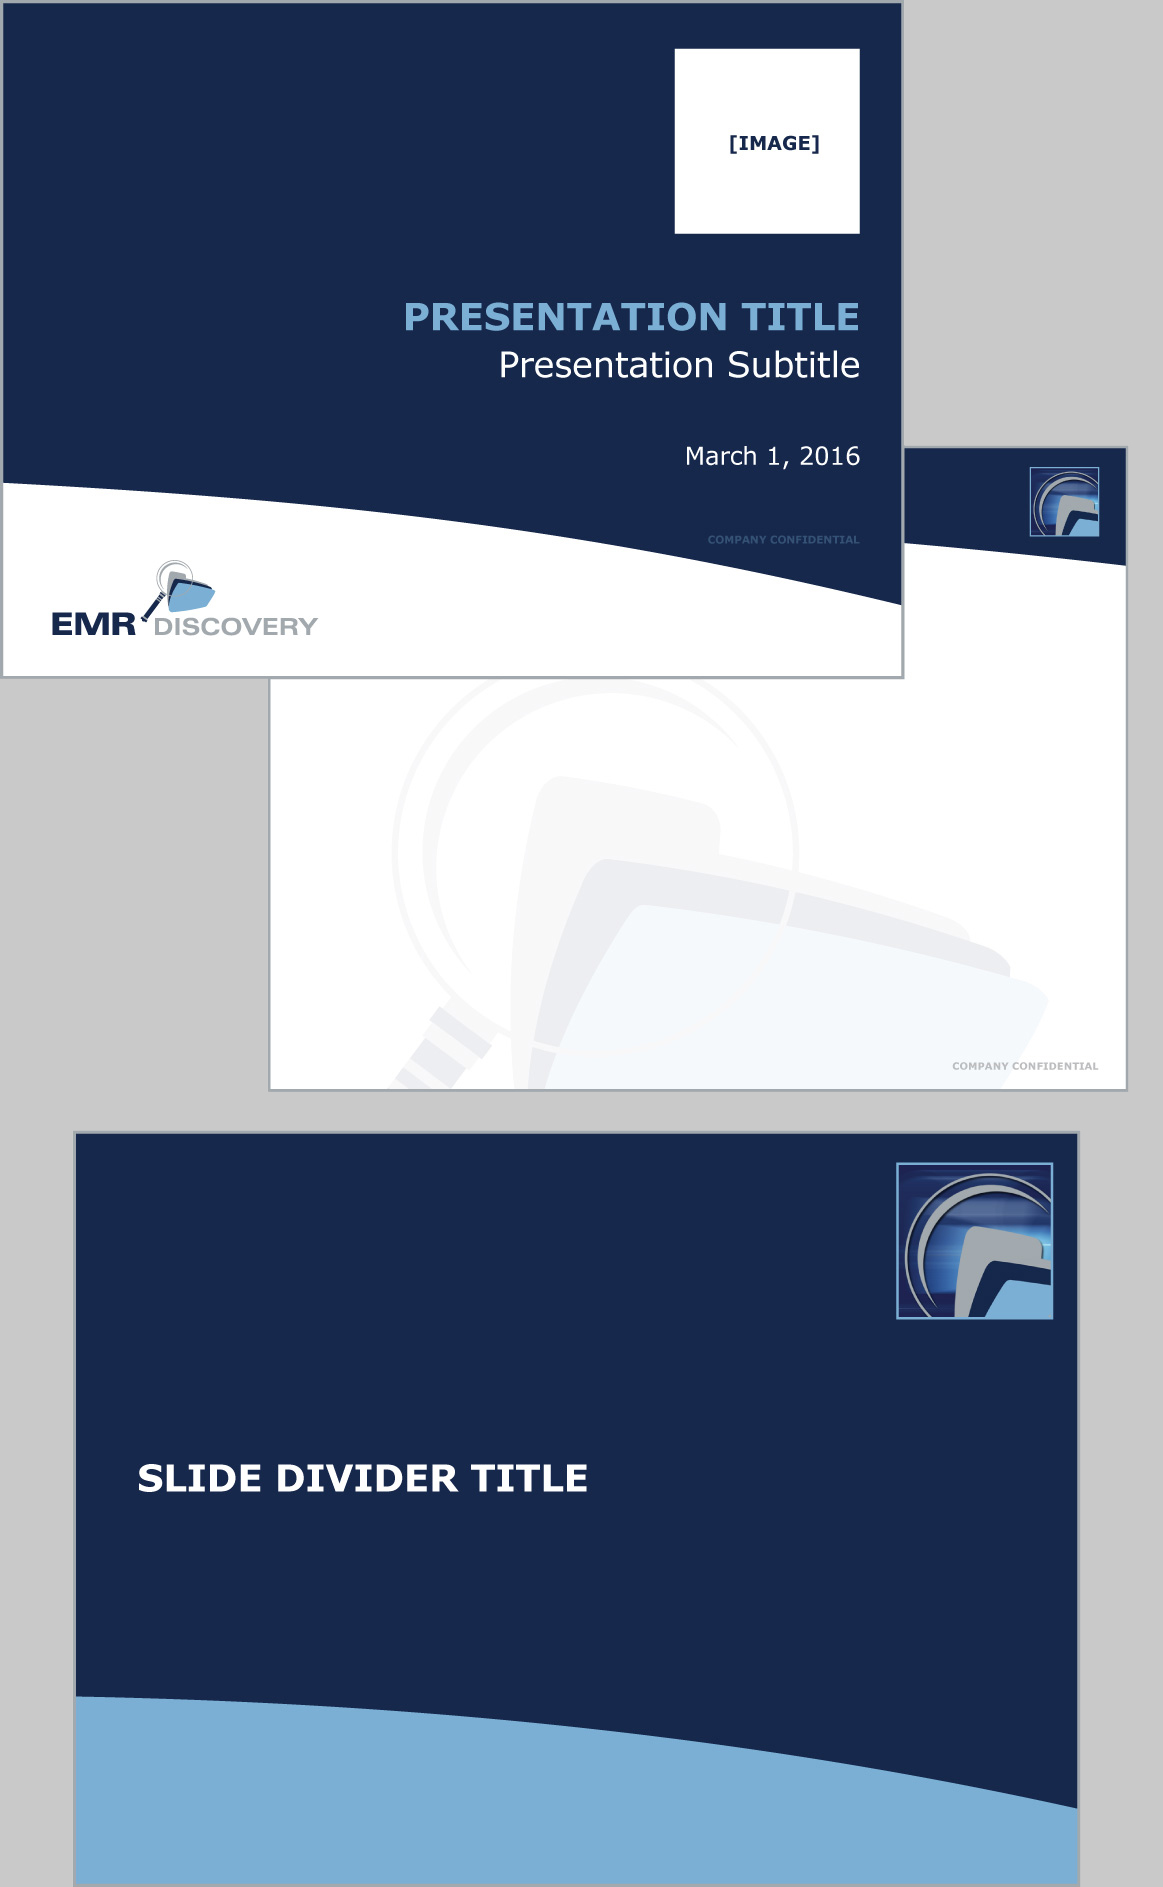 EMR Discovery Logo and Presentation